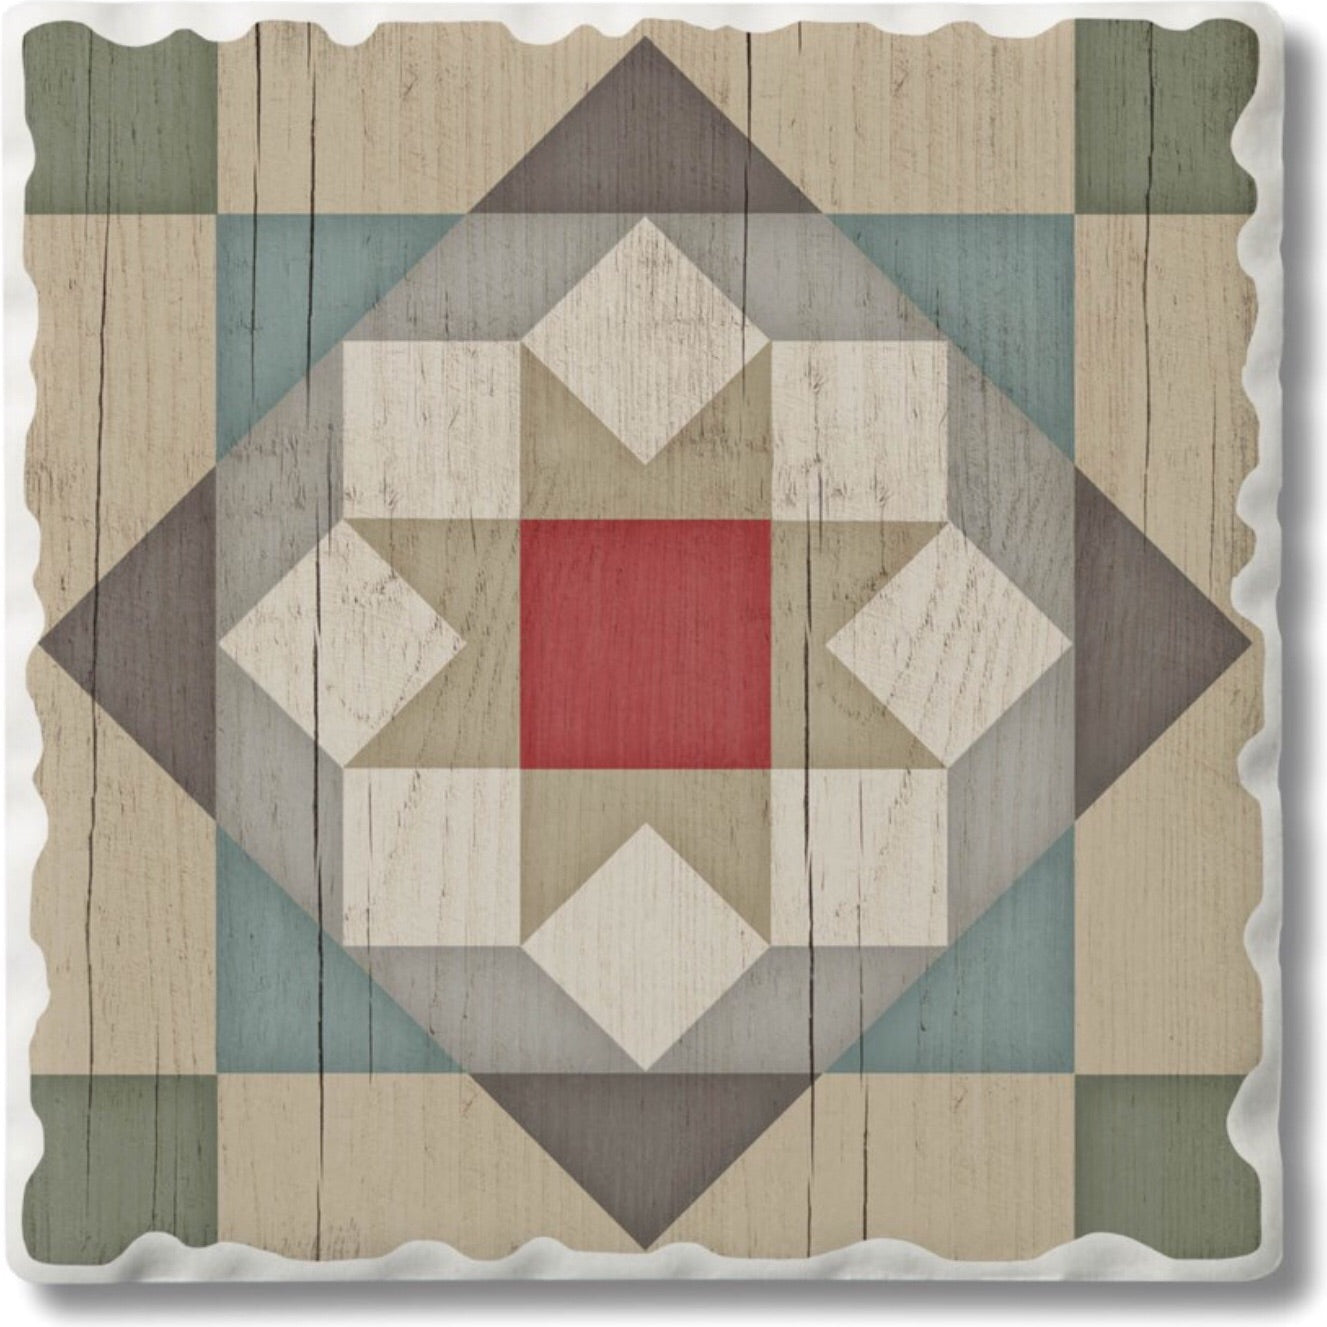 Absorbent Stone Coaster - Barn Star